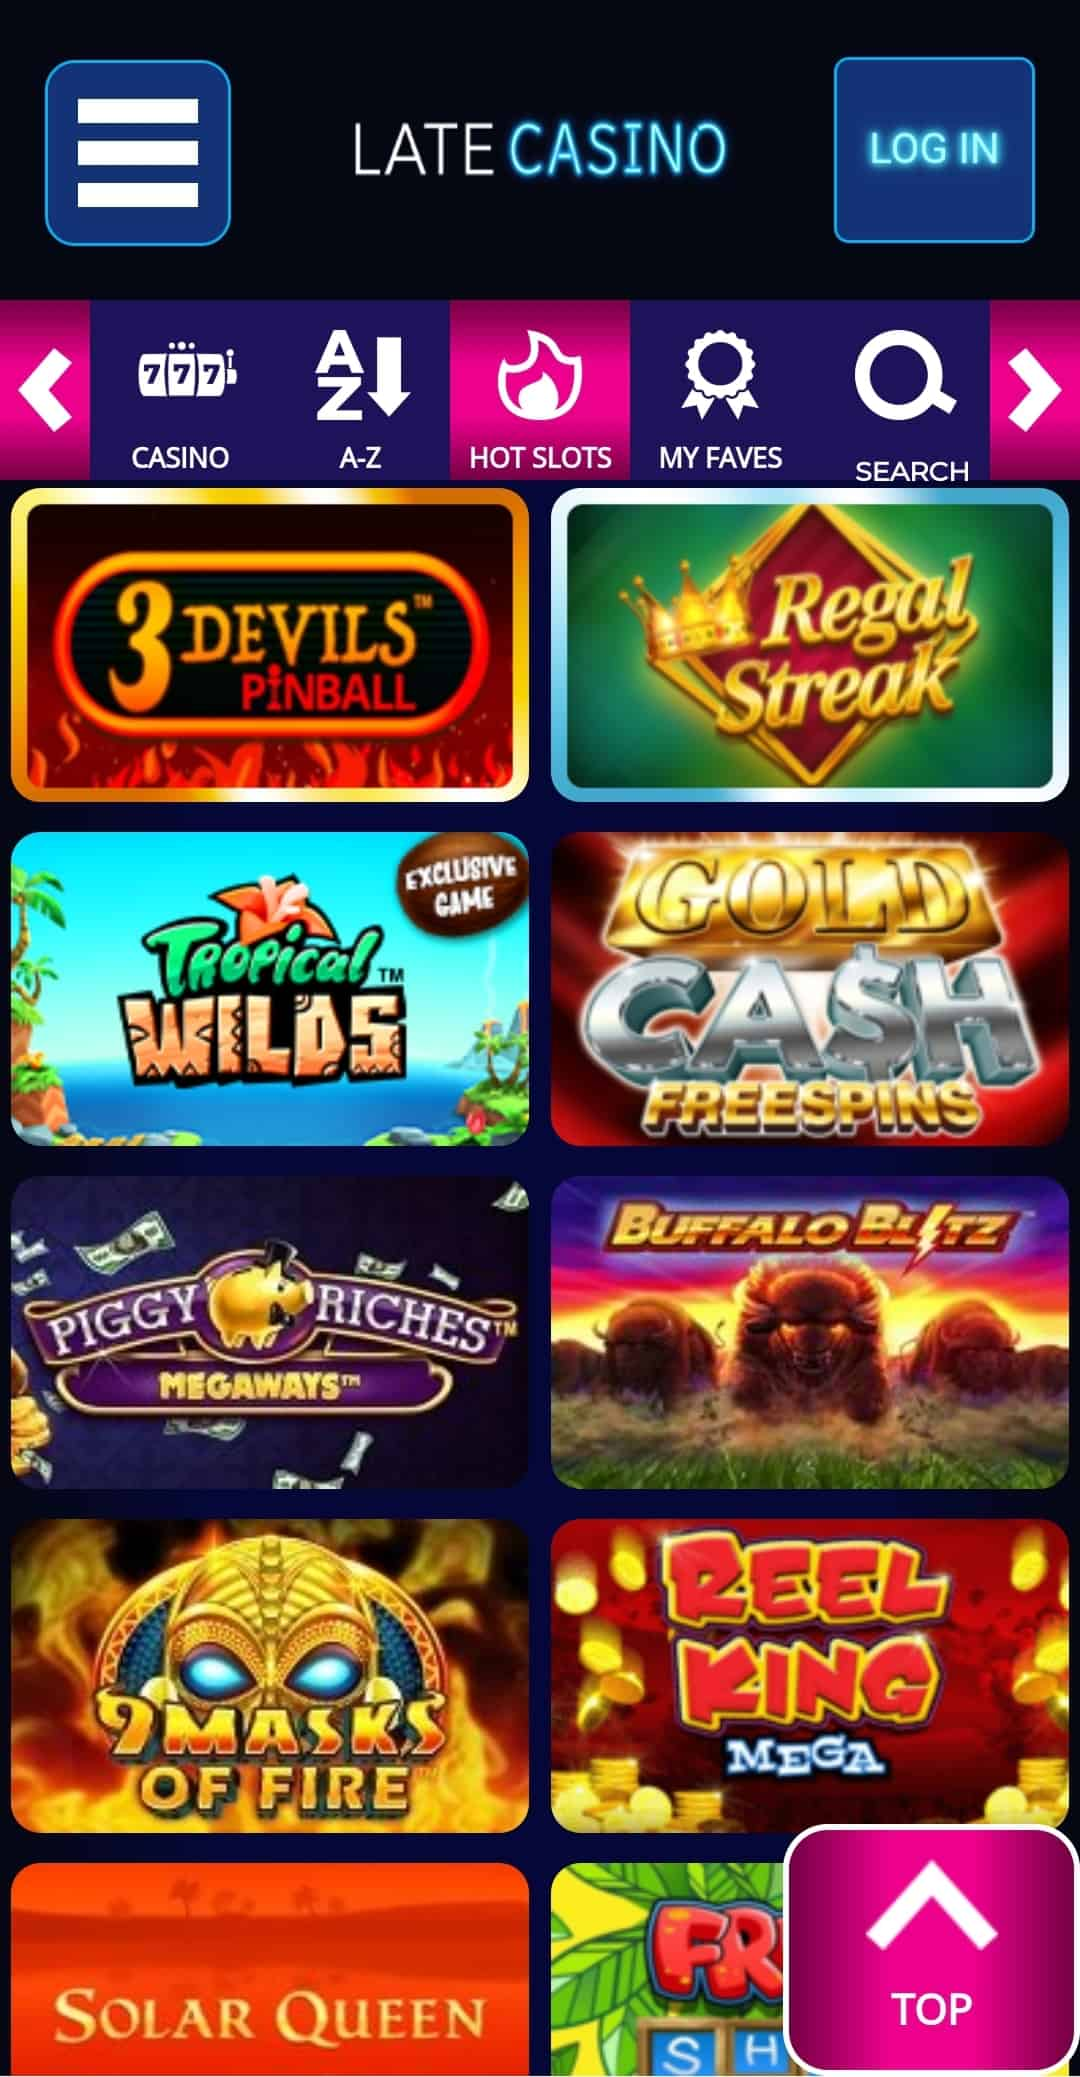 Late casino games page